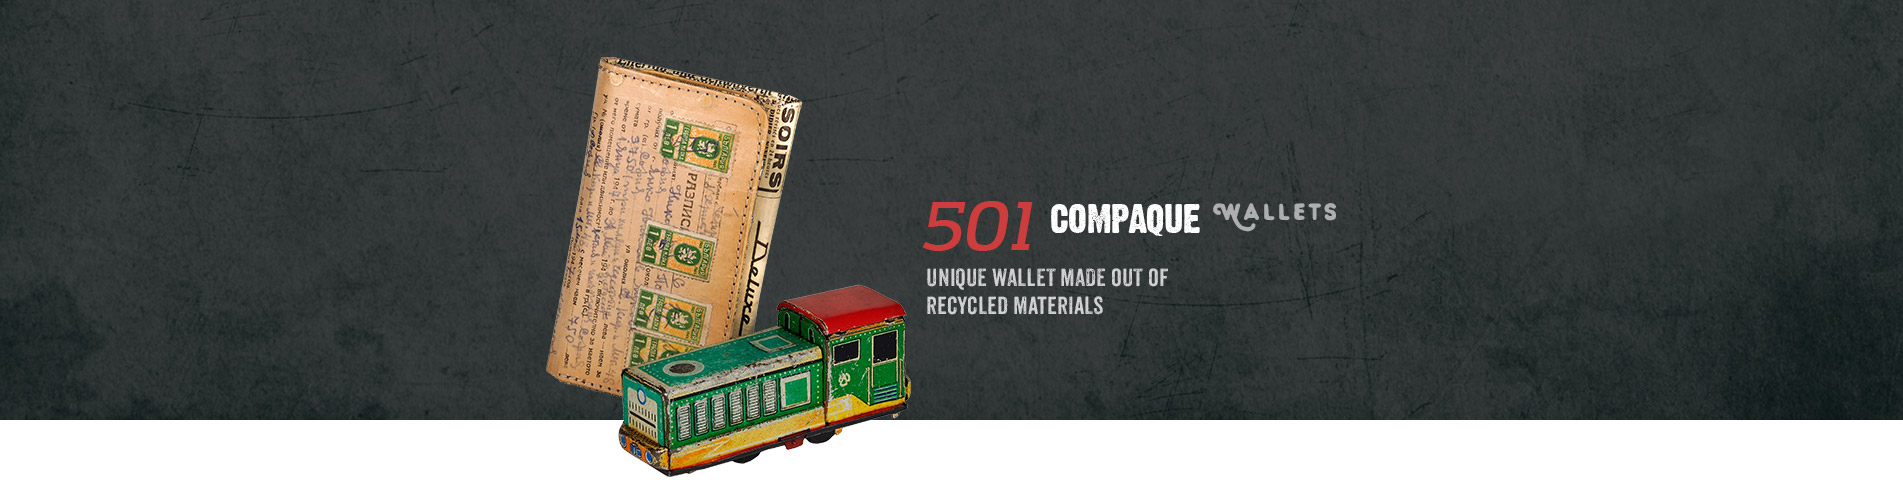 501 Compaque Wallets